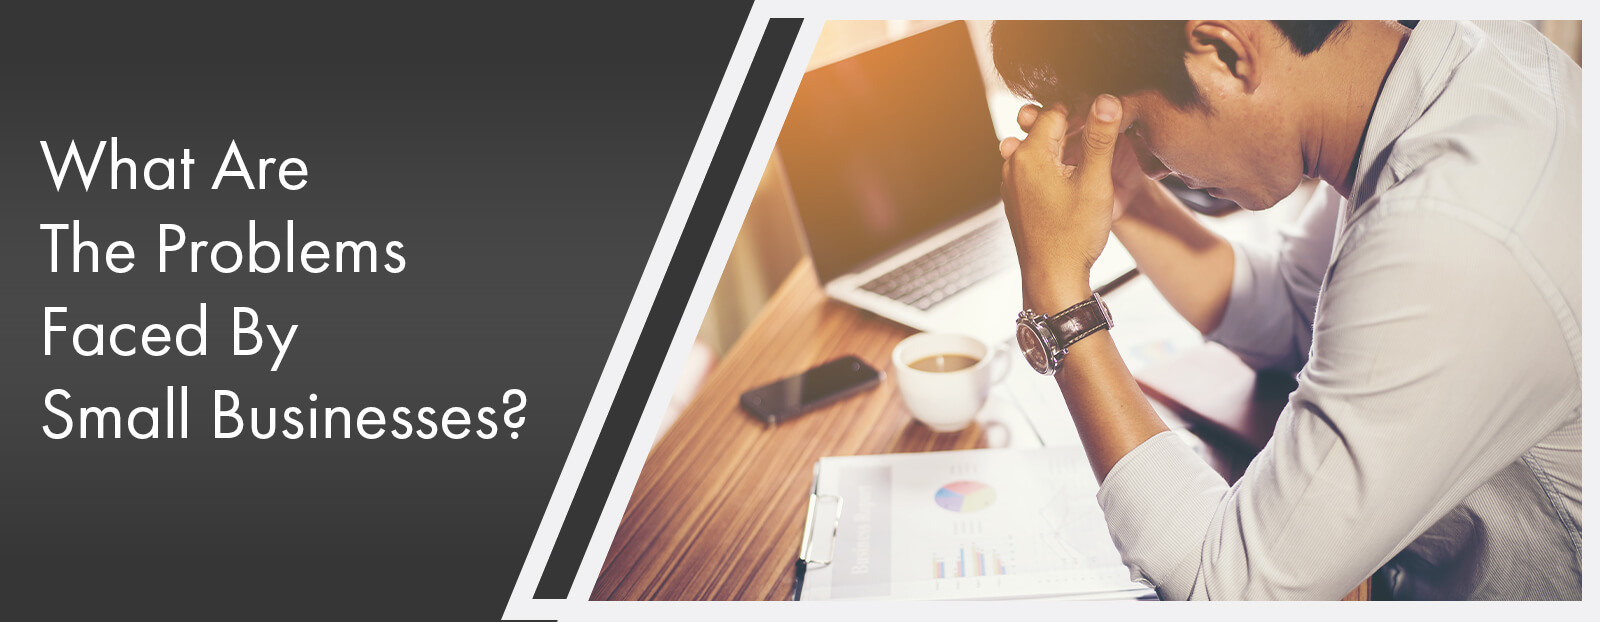 What Are The Problems Faced By Small Businesses?